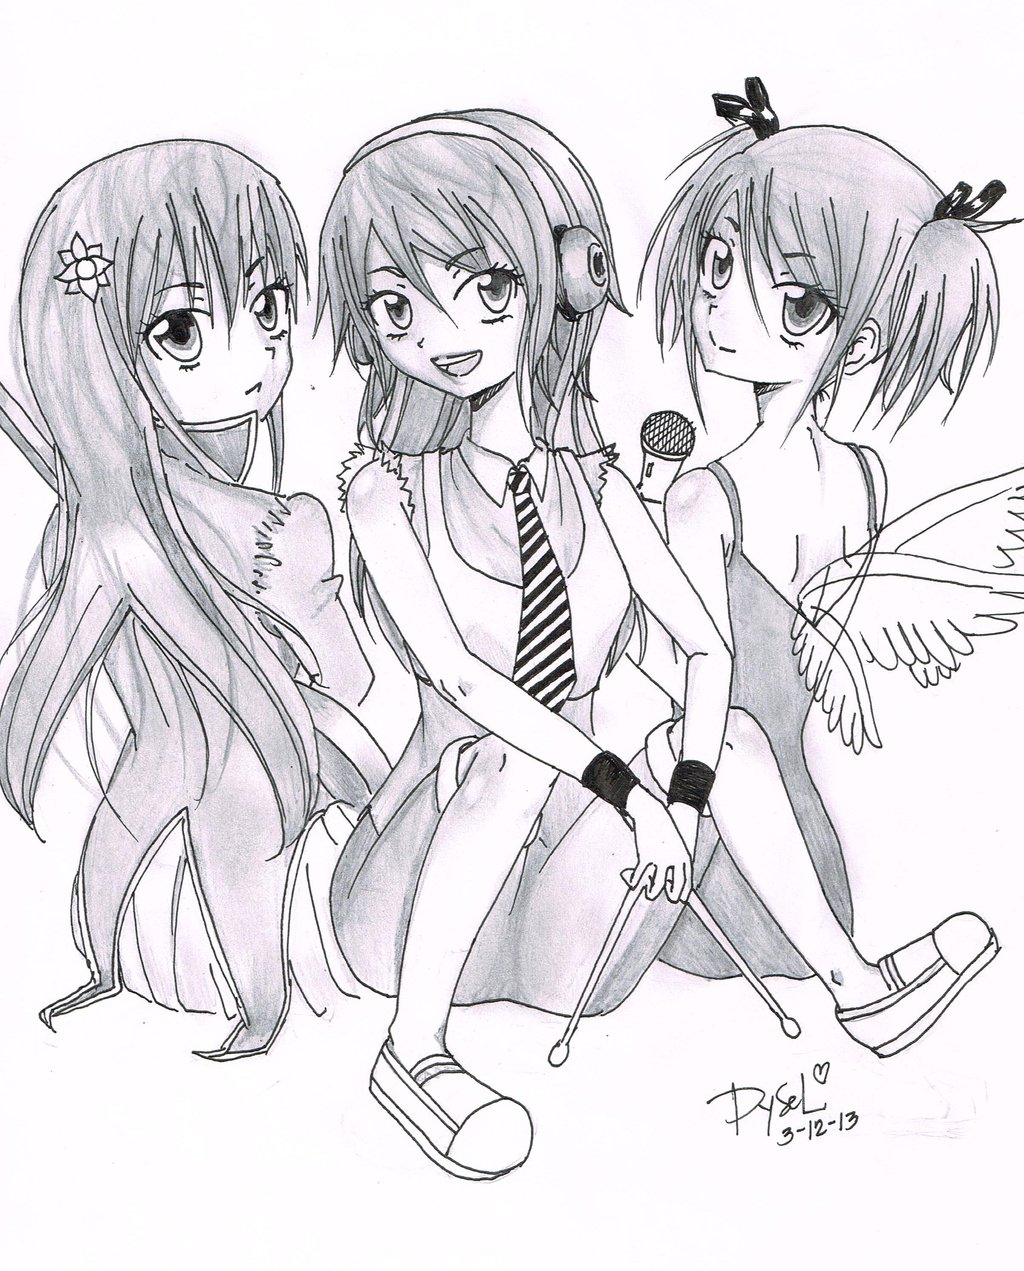 1024x1271 Anime Girls Band Members By Leseyd